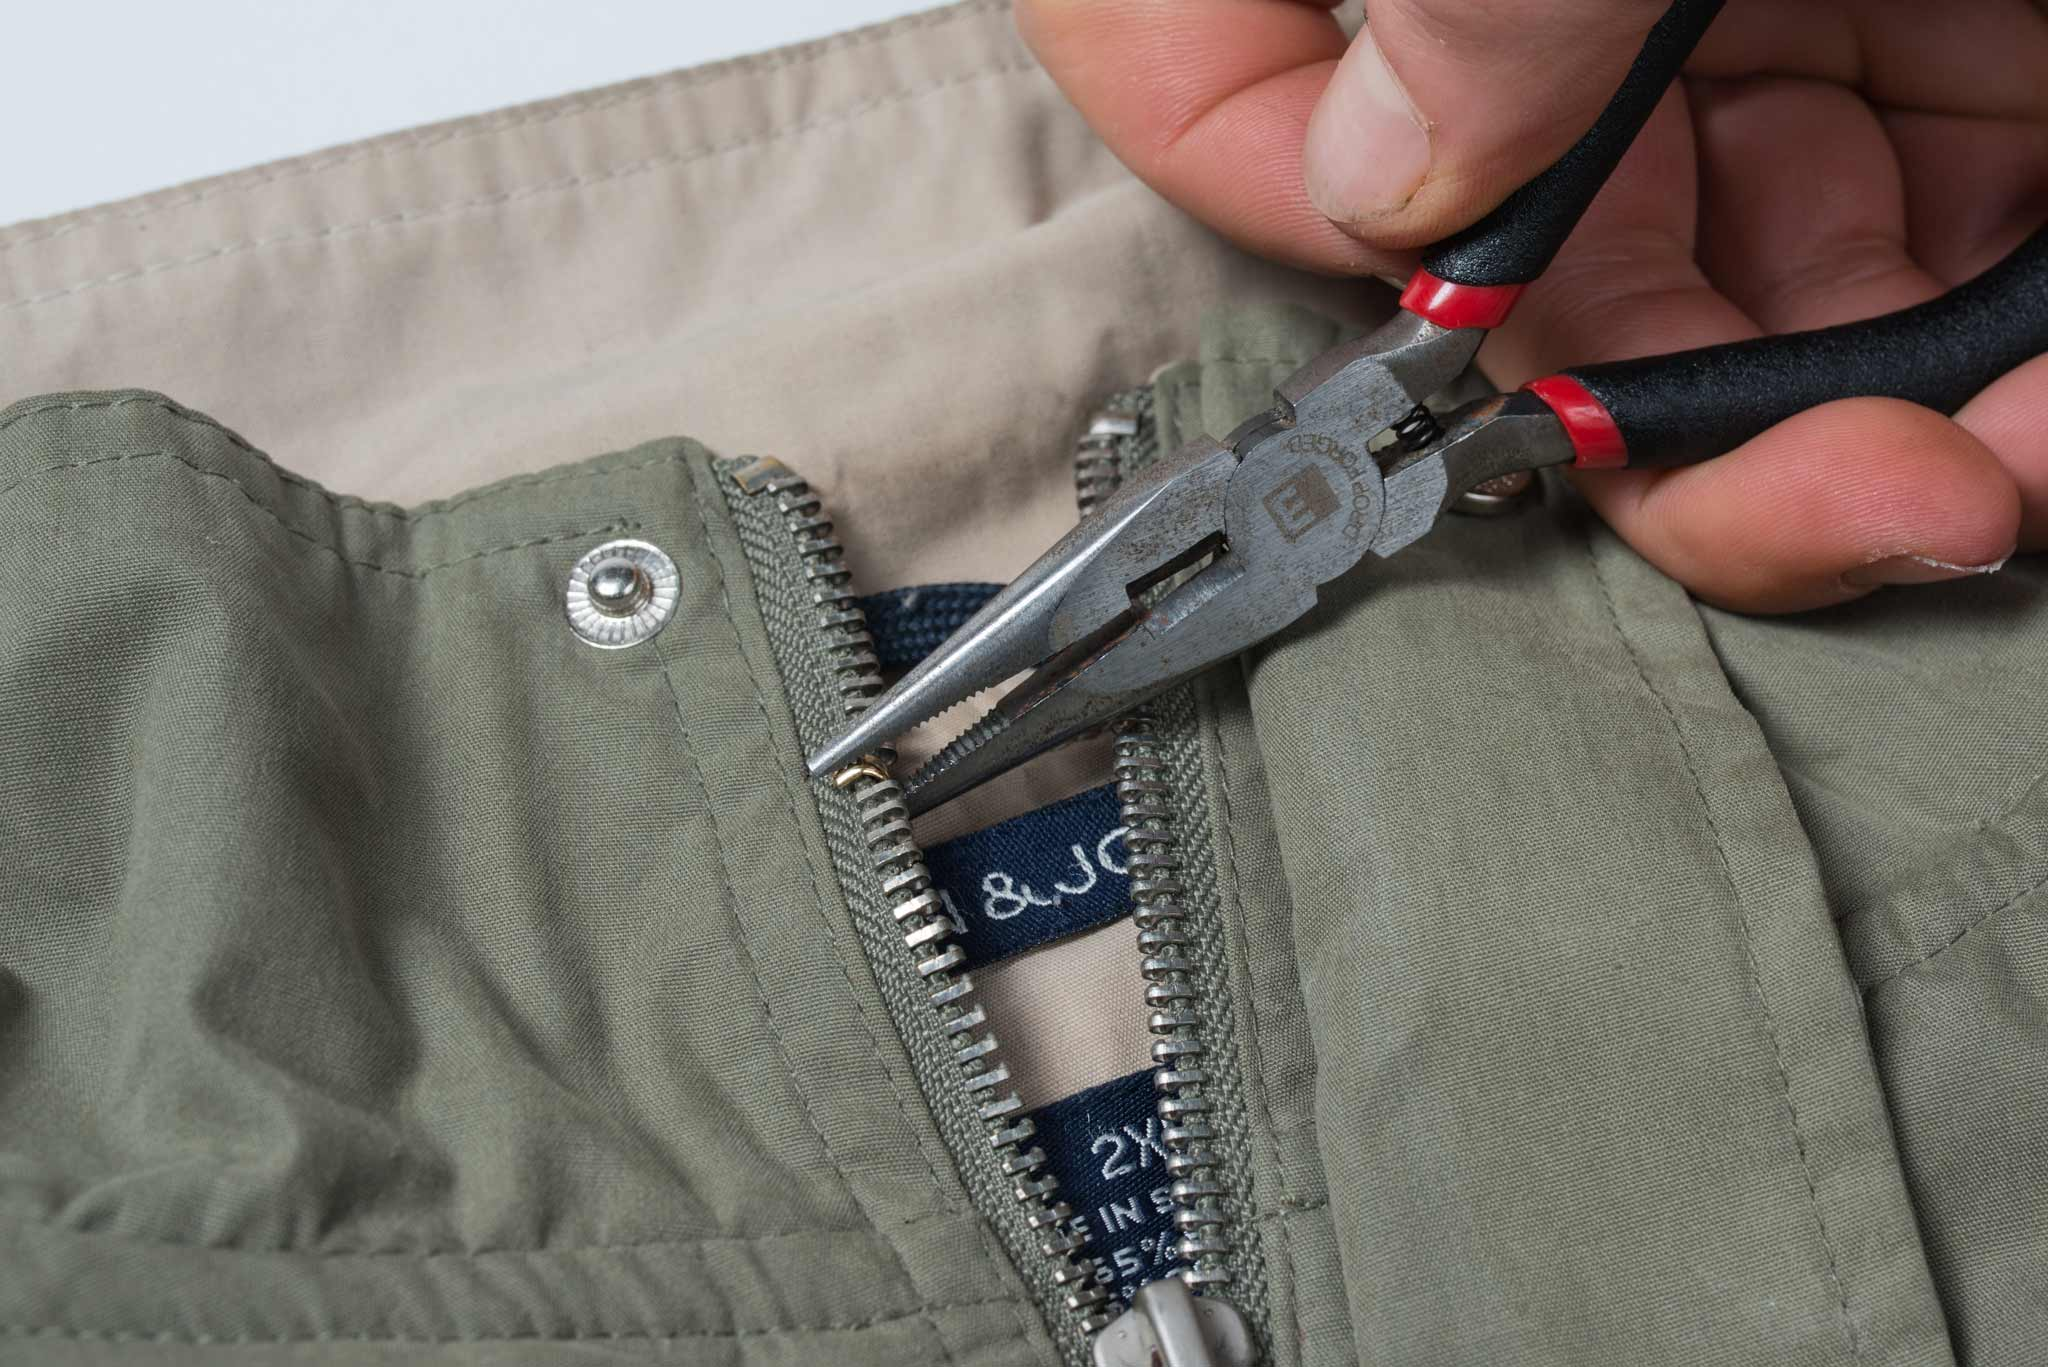 How to fix broken zipper teeth